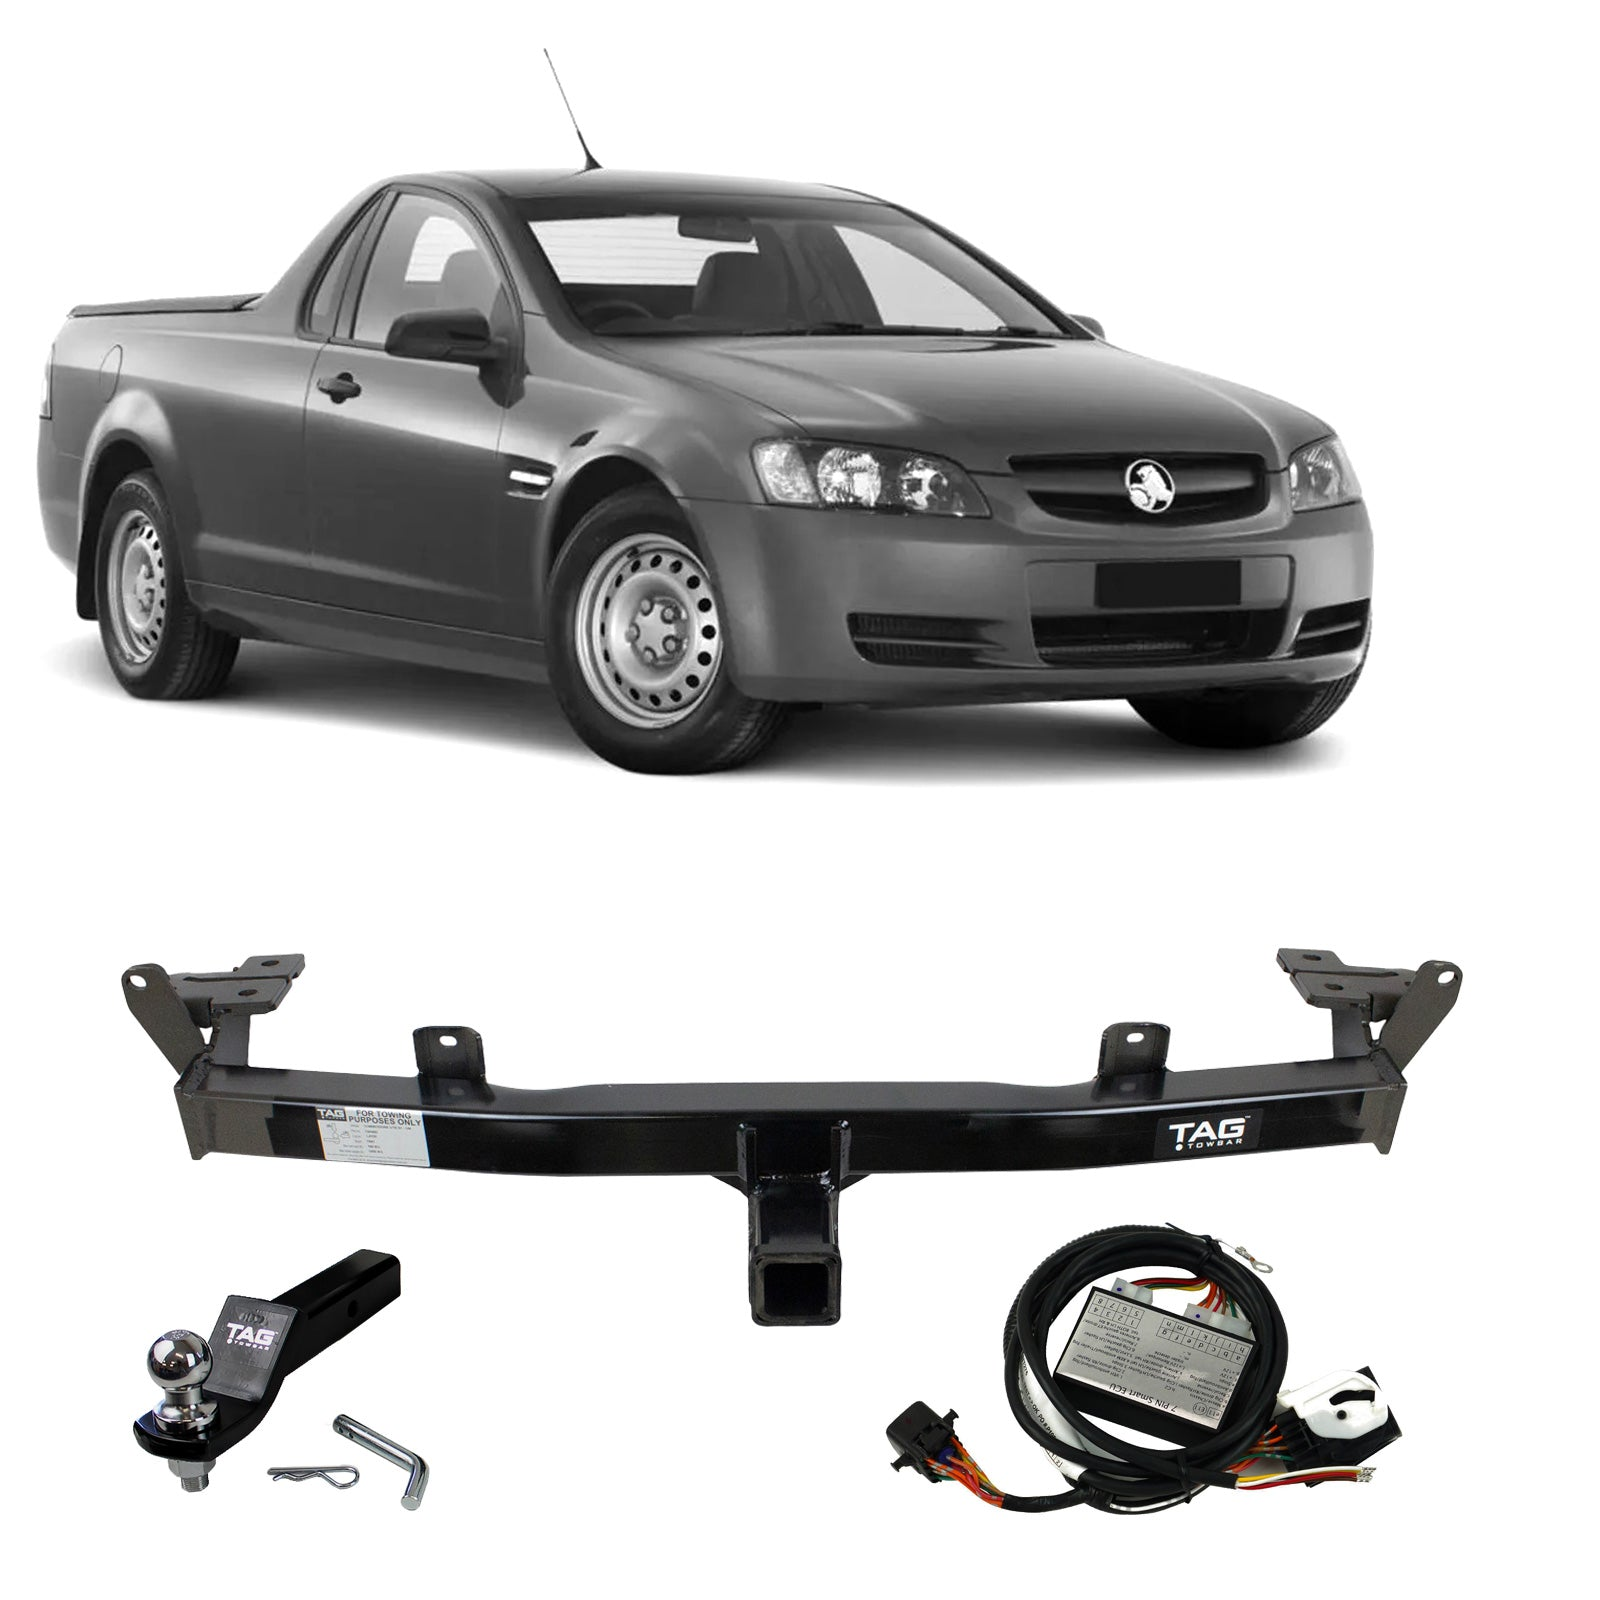 TAG Heavy Duty Towbar to suit Holden Commodore (01/2007 - 01/2013), HSV Maloo (10/2007 - 2013) - No Wiring Harness